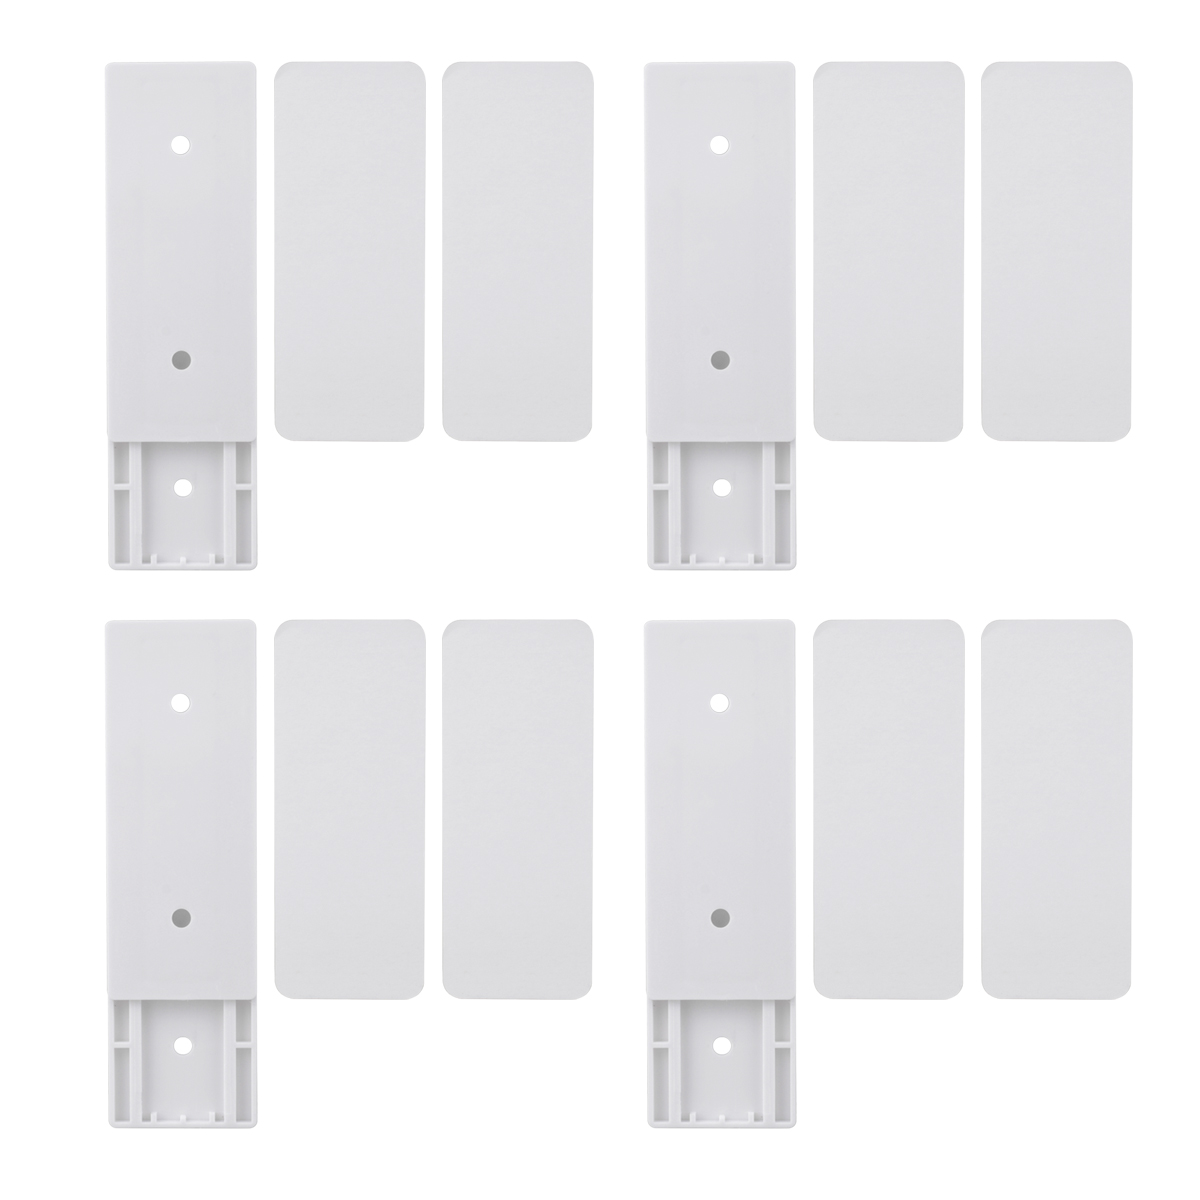 4pcs Wall-Mount Self Adhesive Power Strip Holder Fixator Socket Cable Fixer Rack